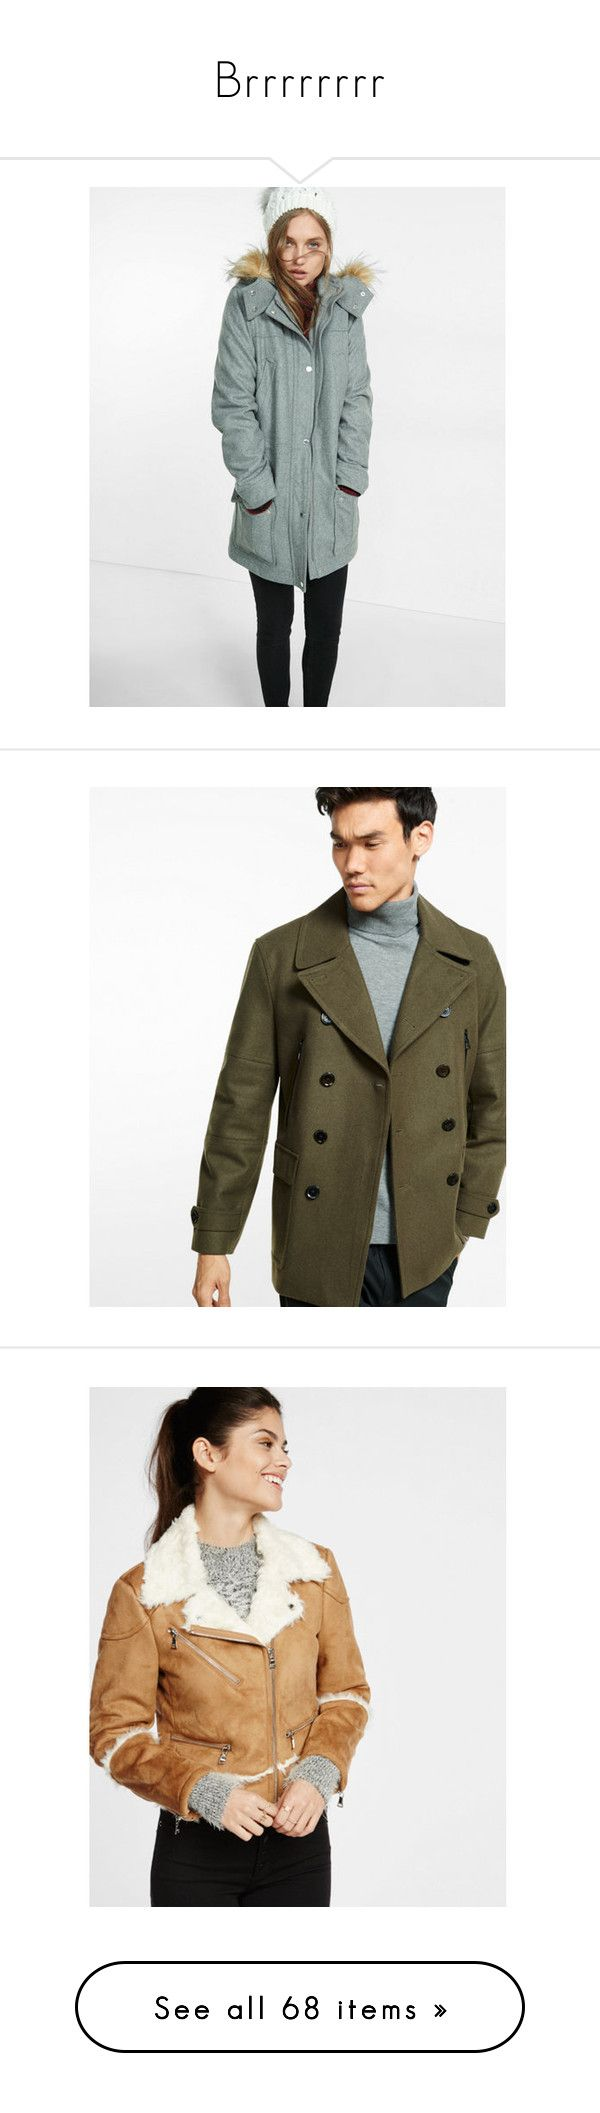 """""""Brrrrrrrr"""" by expressinc ❤ liked on Polyvore featuring outerwear, coats, grey, sports coat, gray sport coat, parka coats, grey sport coat, vintage sport coat, men's fashion and men's clothing"""